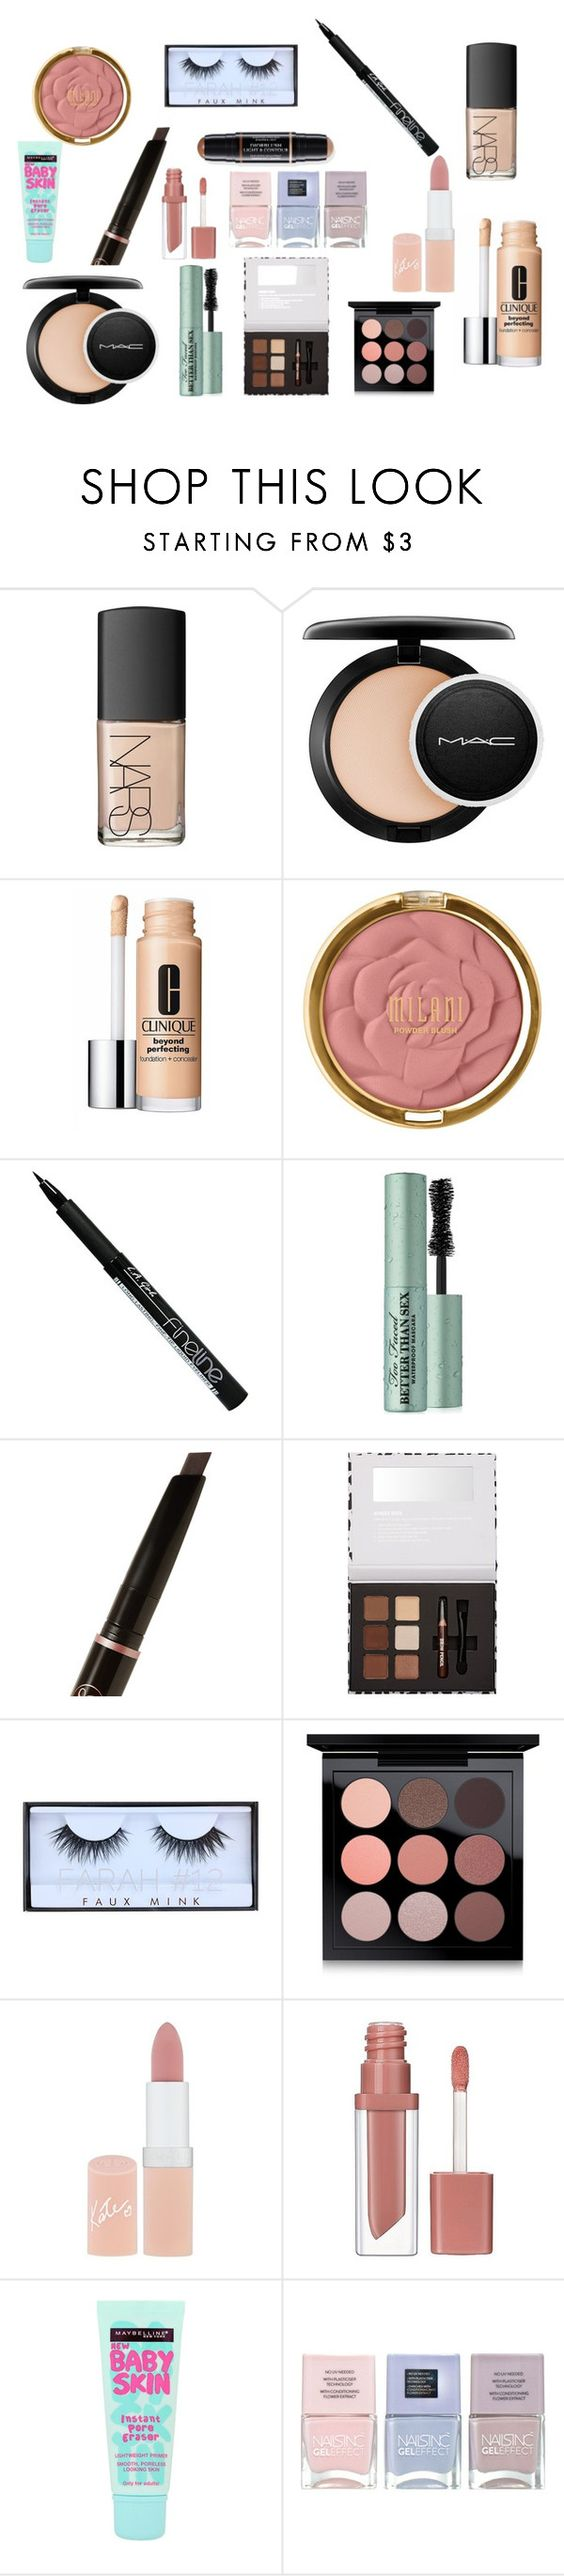 """Daily makeup"" by mrslexluthorloki on Polyvore featuring beauty, NARS Cosmetics, MAC Cosmetics, Clinique, Milani, Too Faced Cosmetics, Anastasia Beverly Hills, Huda Beauty, Rimmel and Essence"